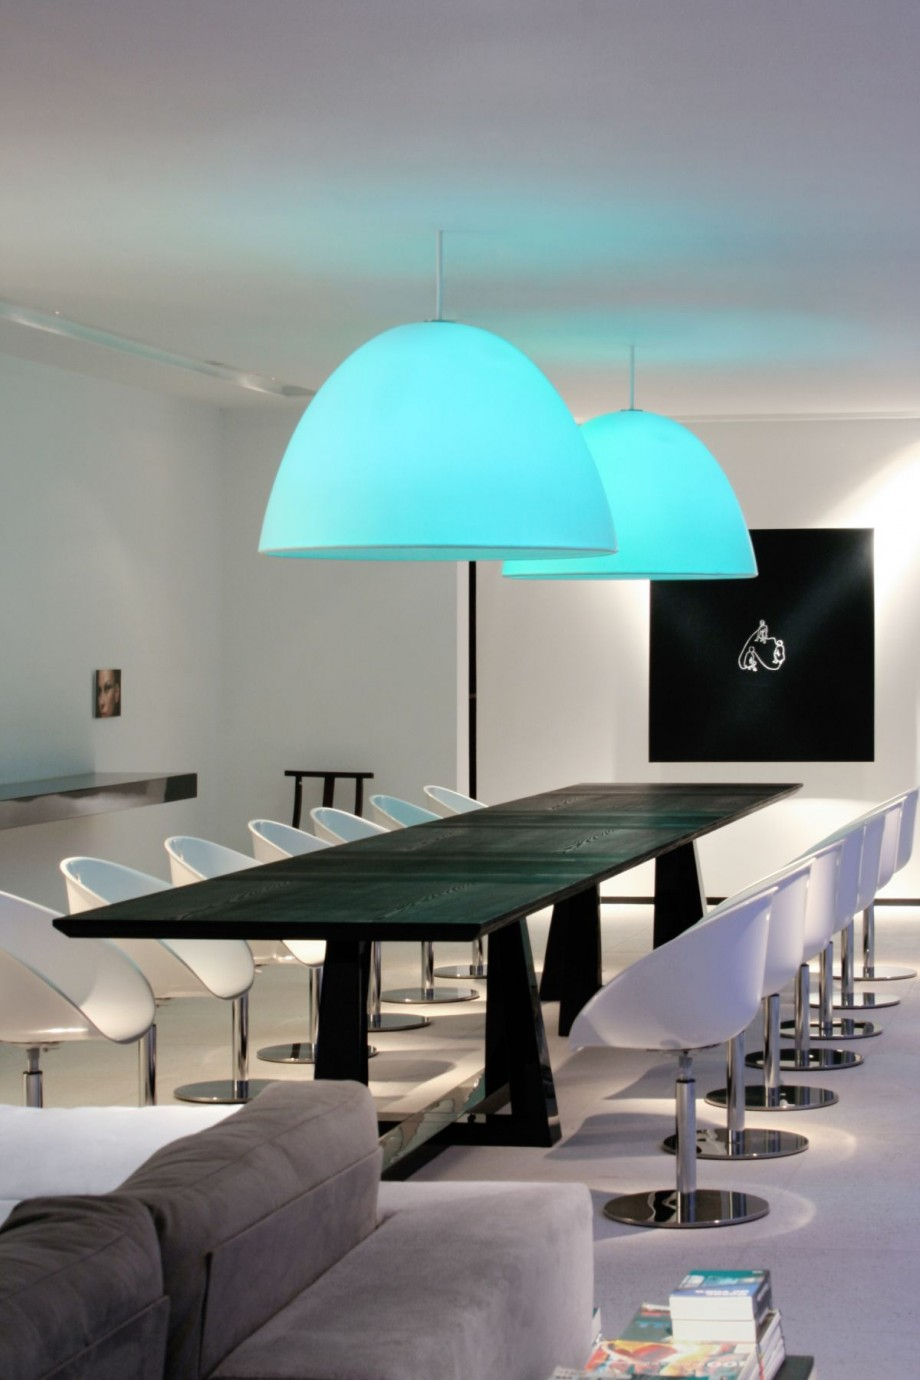 Inspiring Modern Dining Room Design With Large Blue Lights